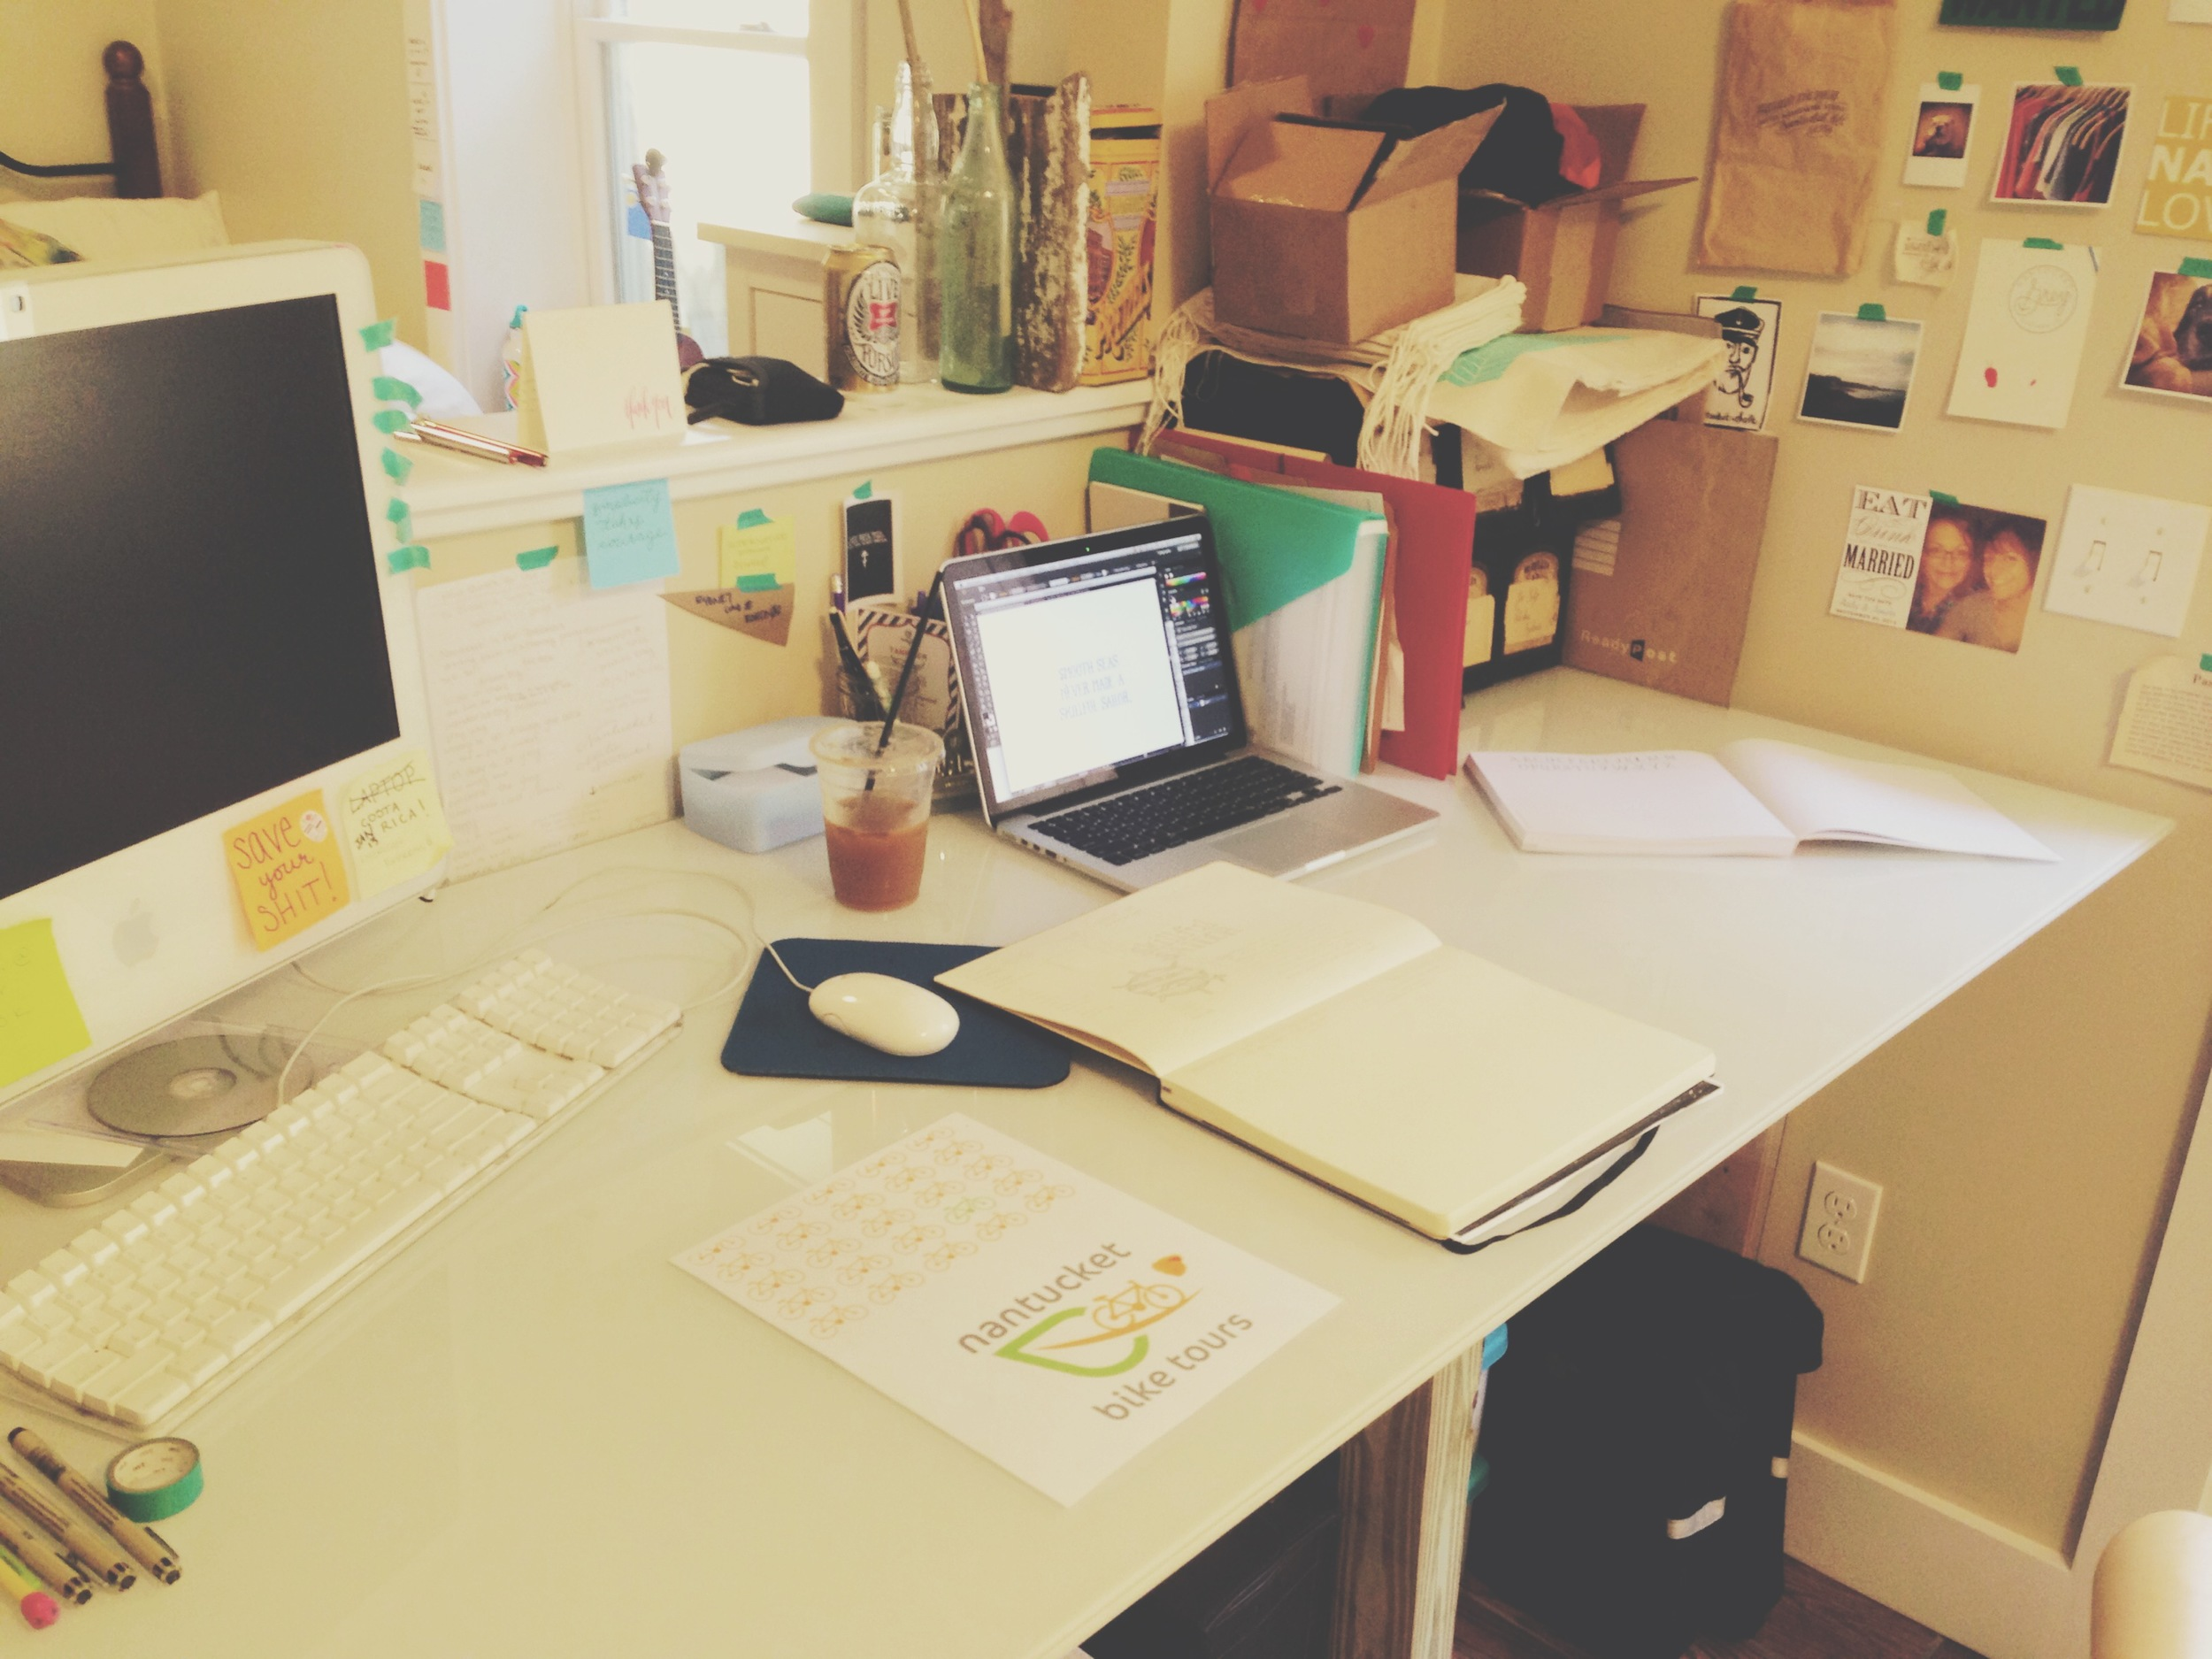 My messy creative space with inspiration wall and projects I'm working on.